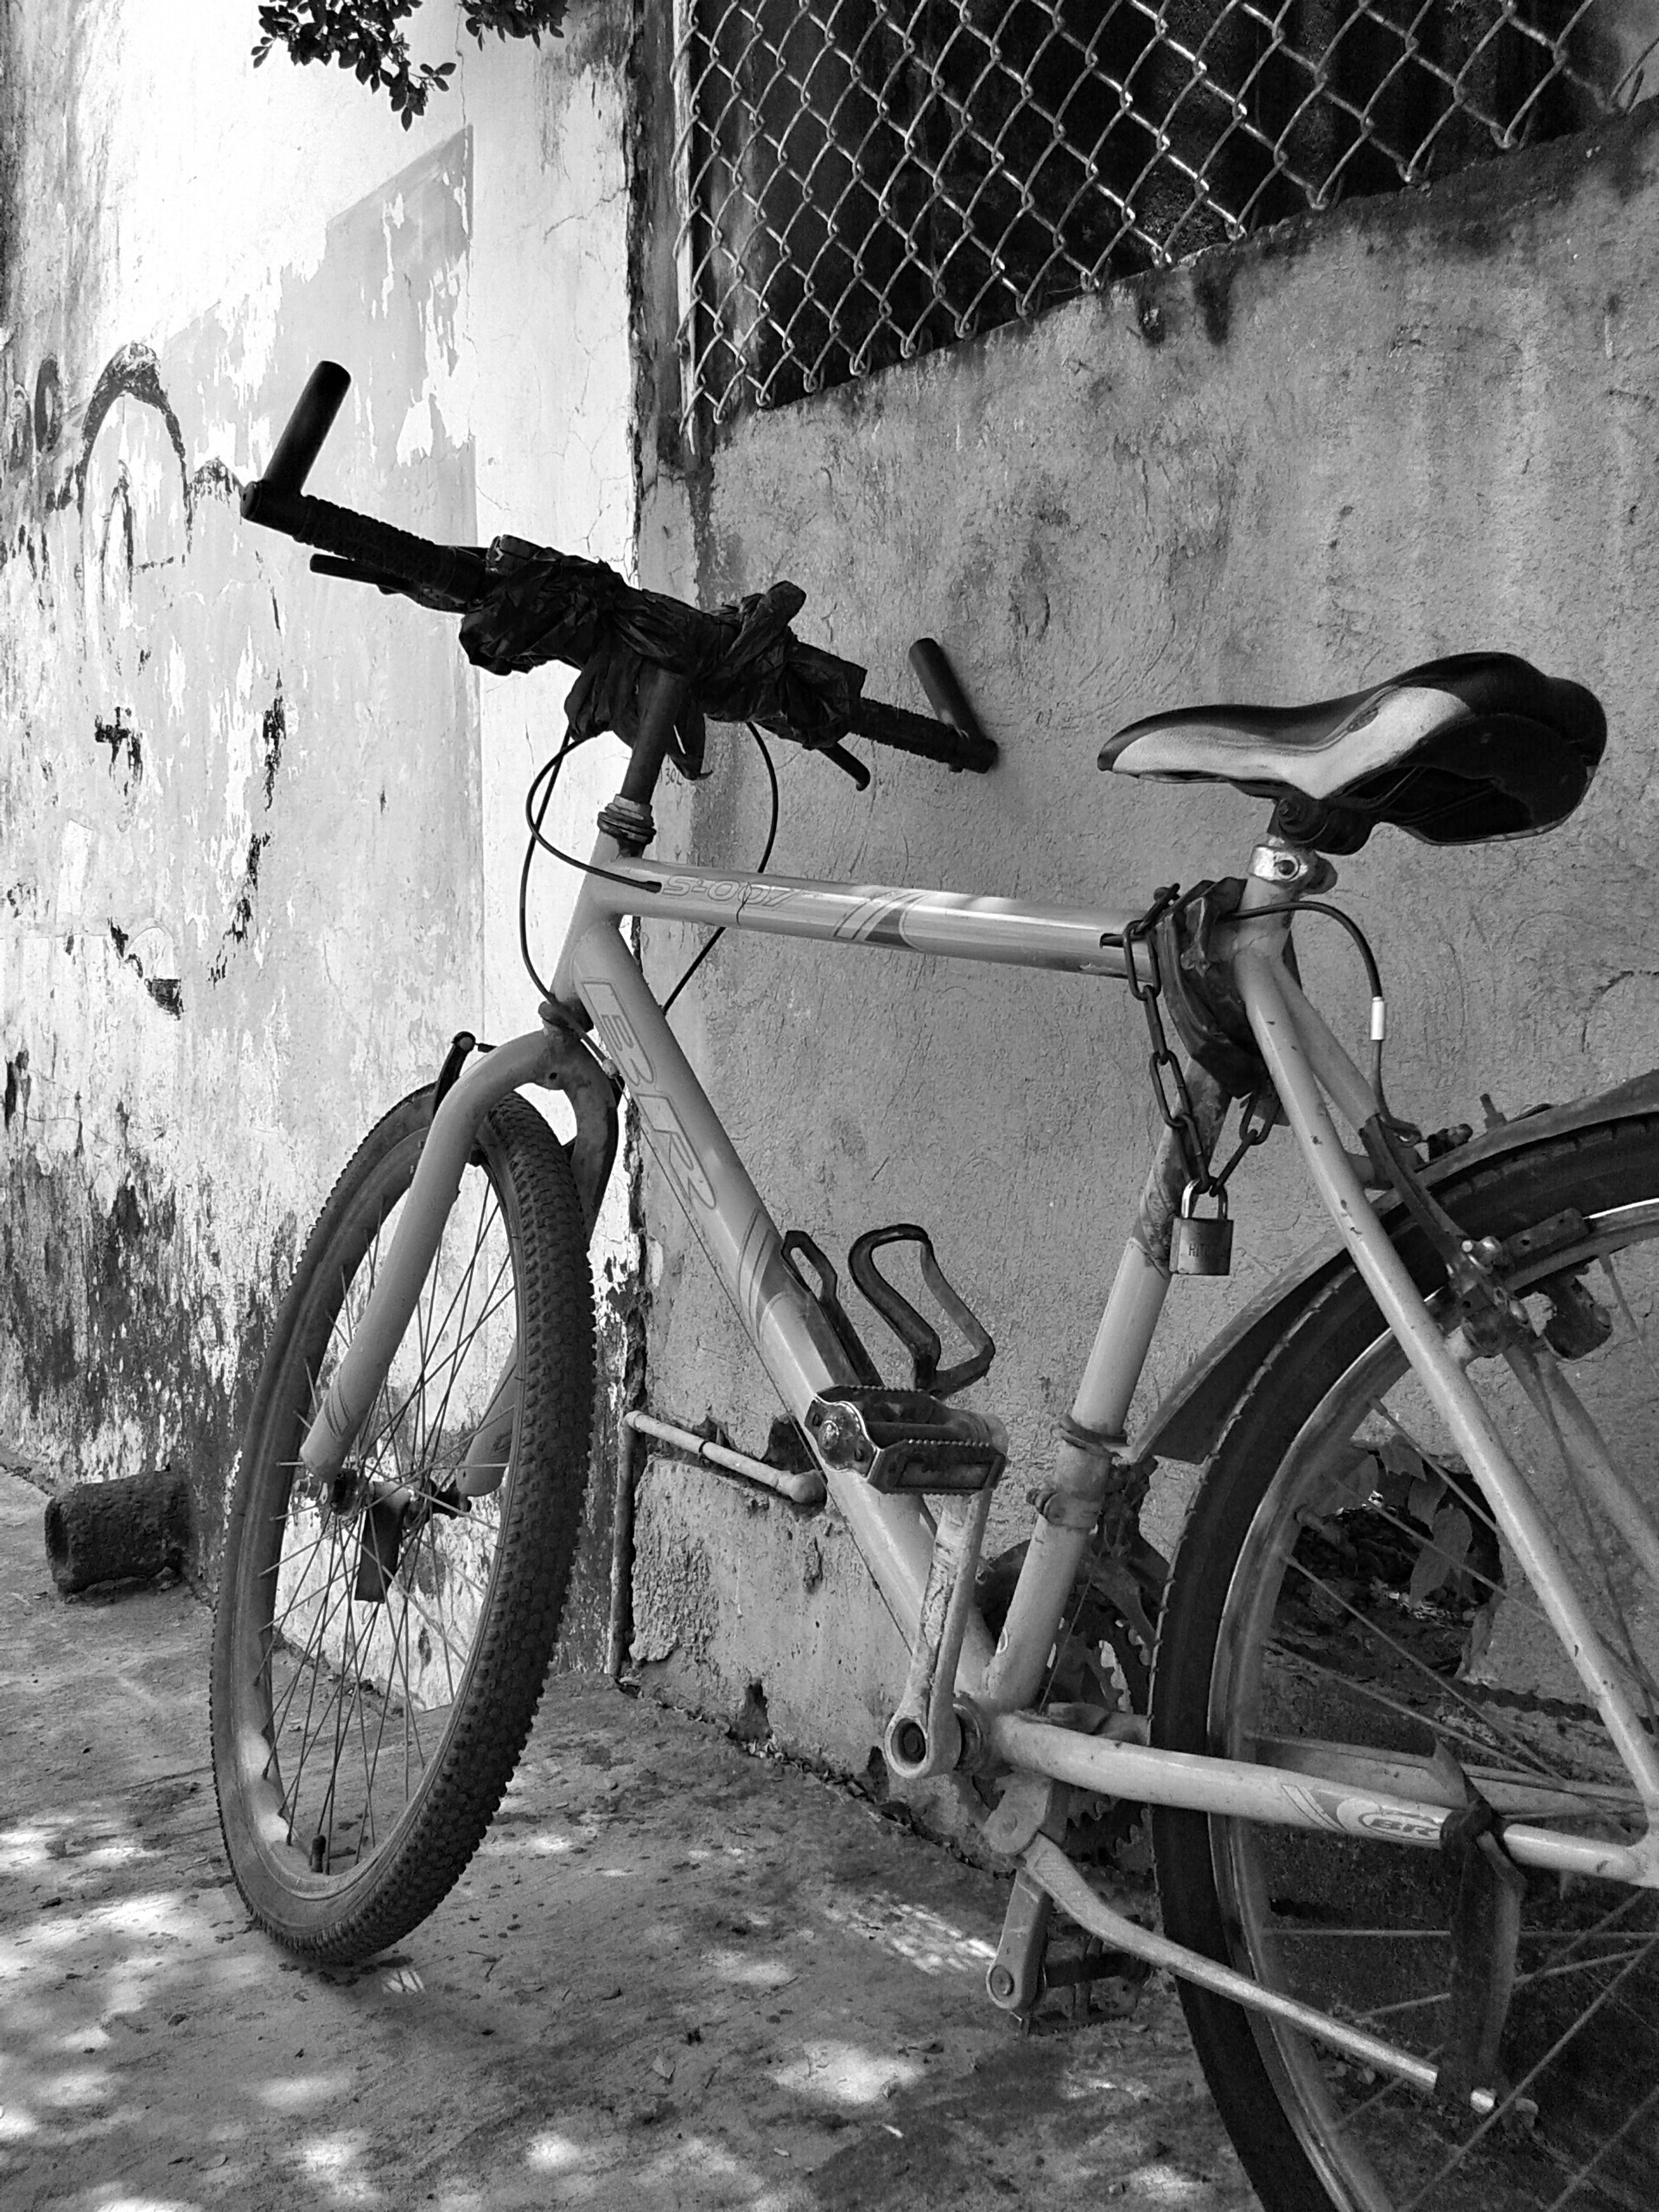 bicycle, transportation, mode of transport, land vehicle, stationary, parked, parking, wall - building feature, wheel, metal, day, outdoors, cycle, abandoned, street, no people, damaged, old, built structure, wall